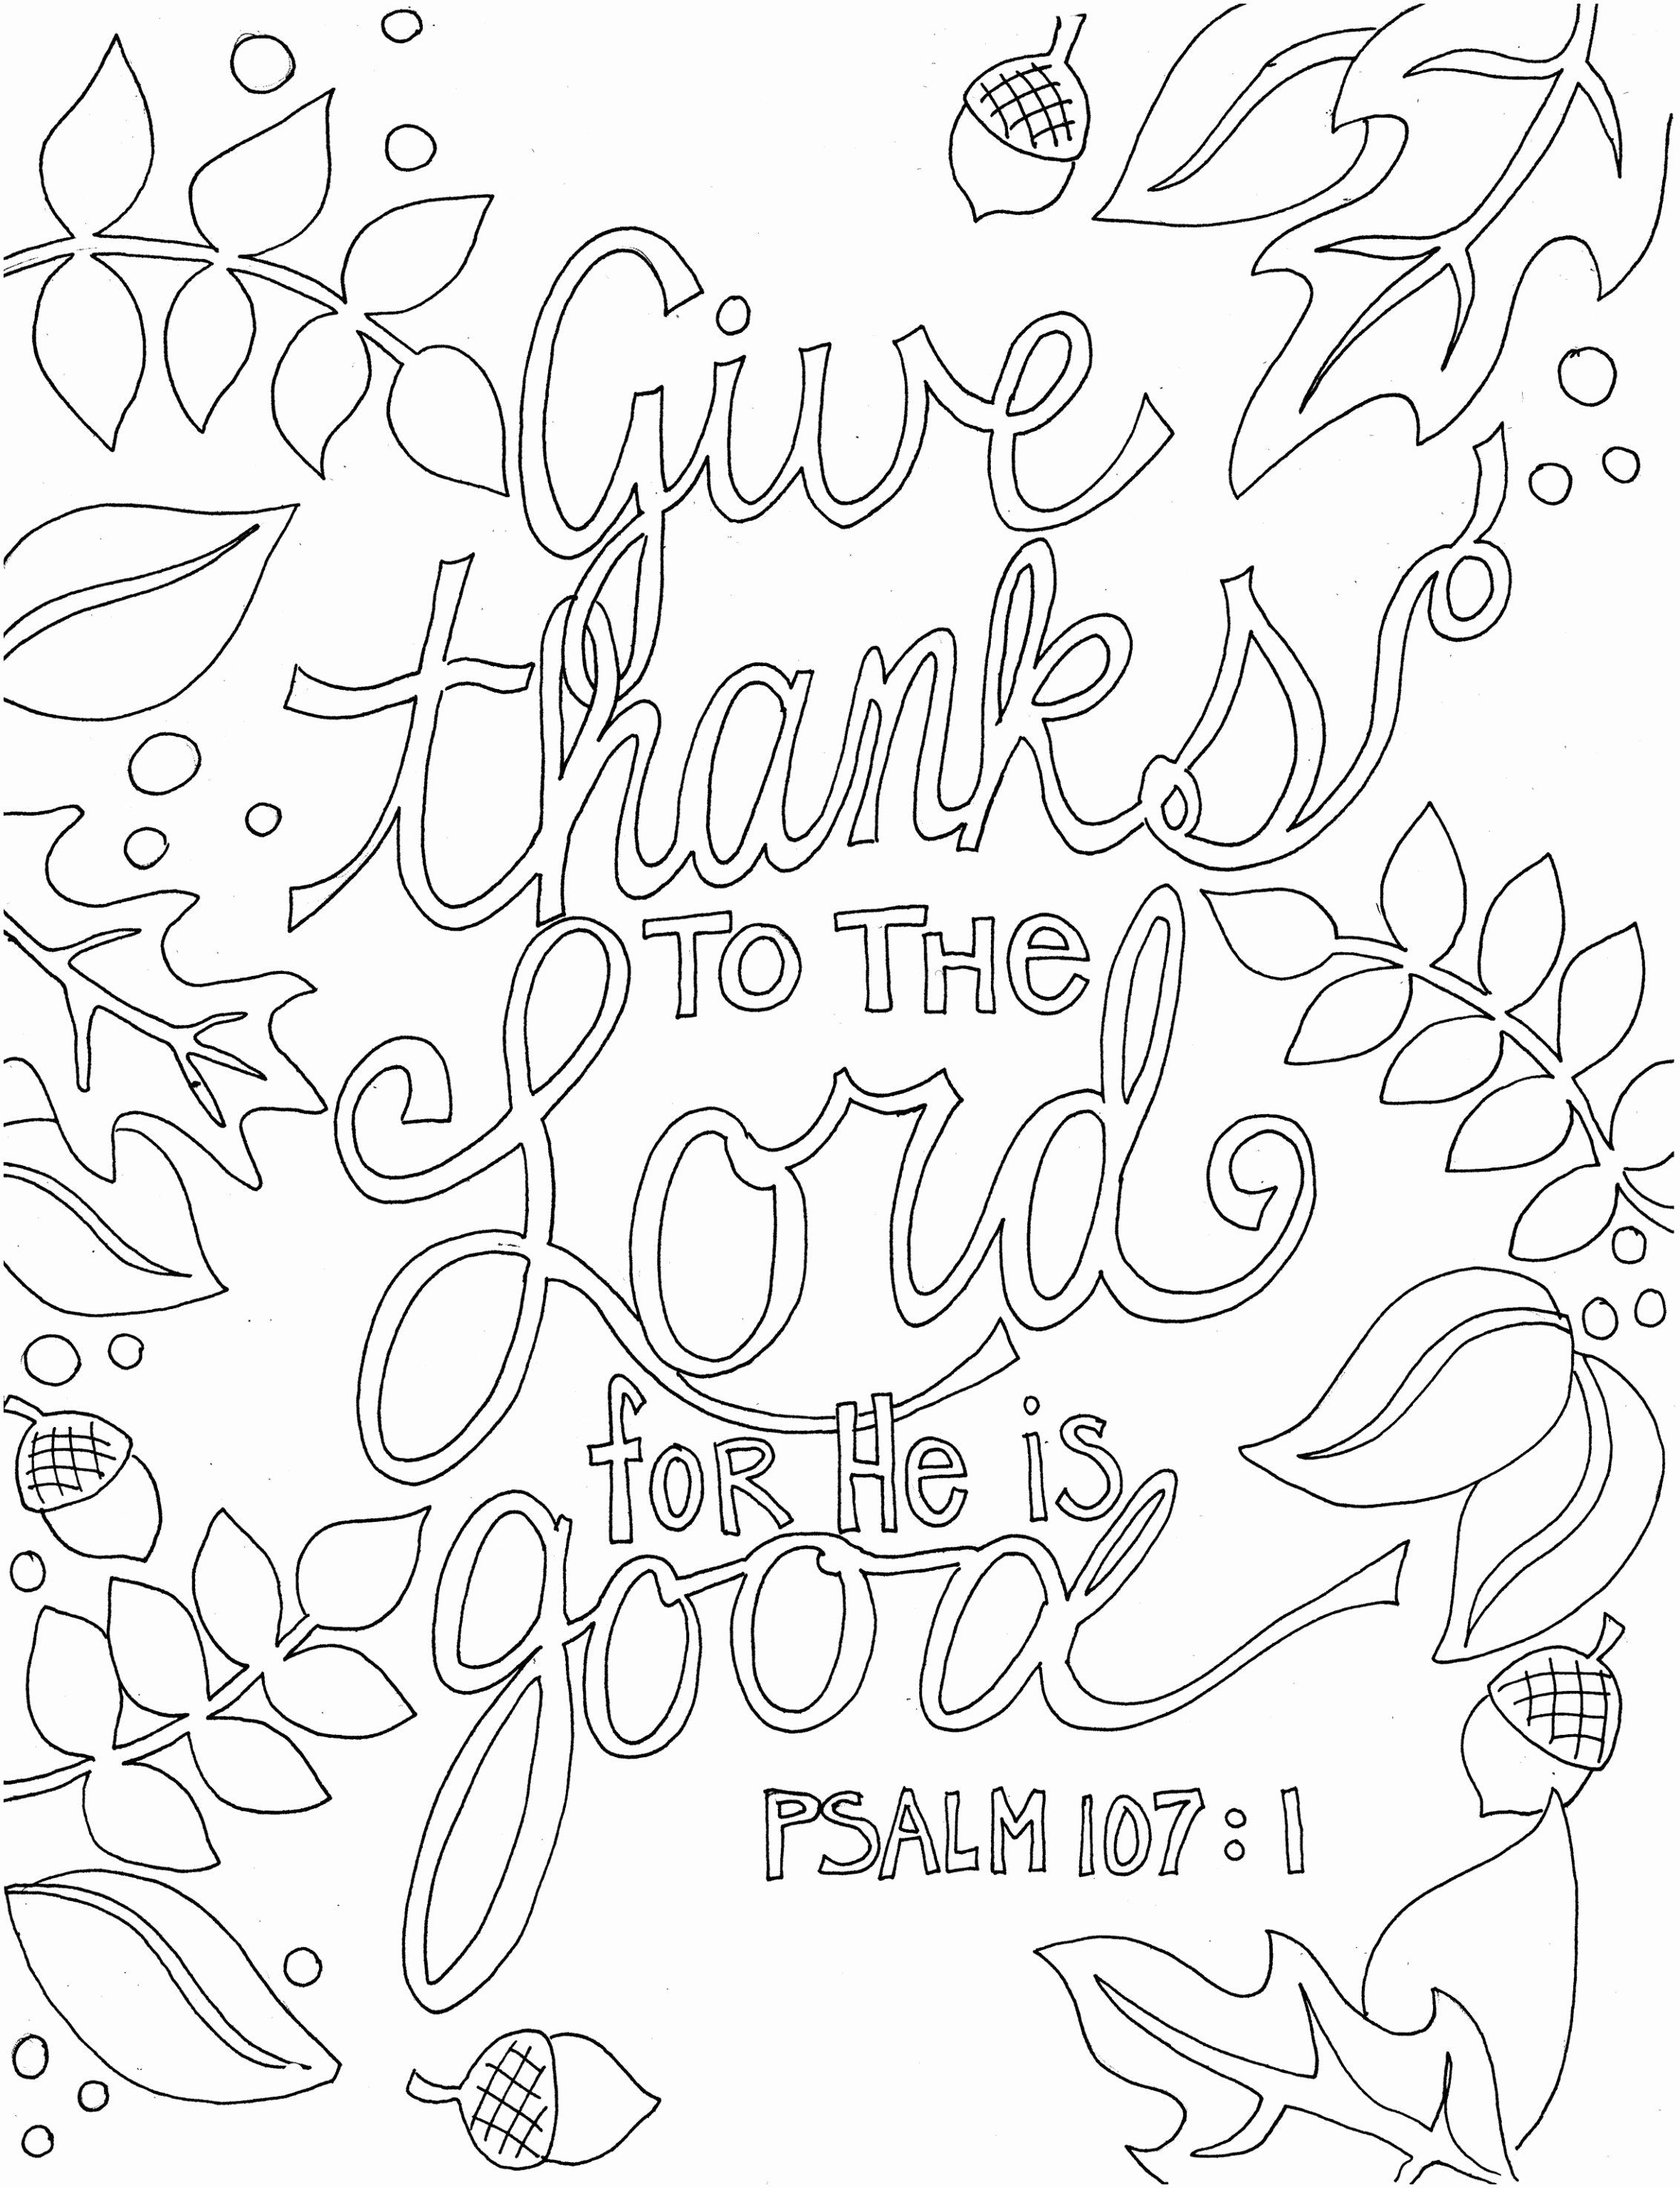 Design Coloring Pages Animals Inspirational Lovely Hosanna For Jesus Coloring Pages Kursknews Kata Kata Alkitab Gambar Rohani